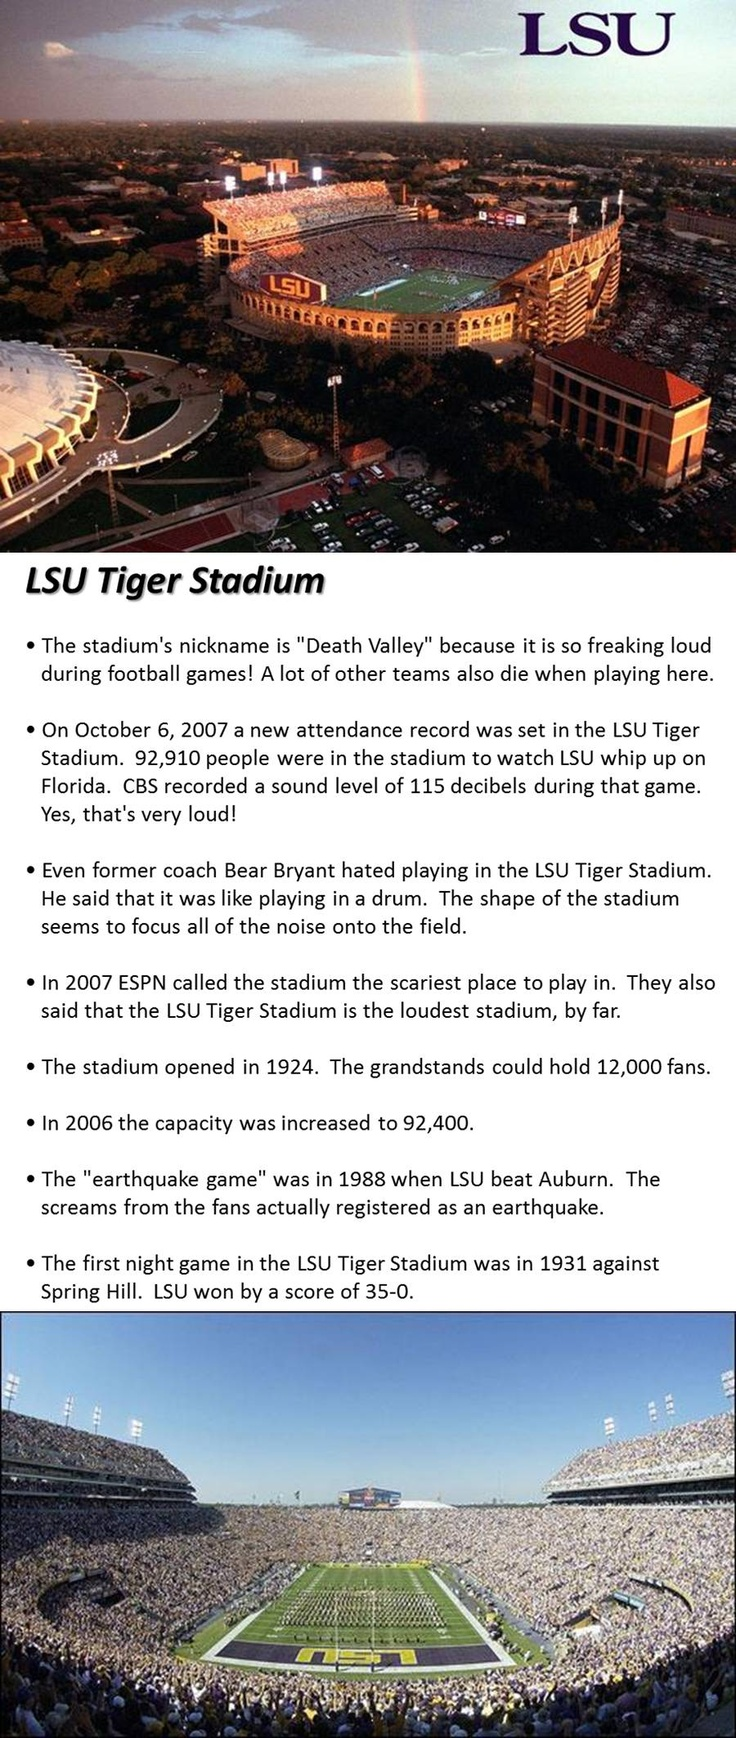 LSU - Louisiana State University Tigers - pix and history of Tiger Stadium , aka - Death Valley - football